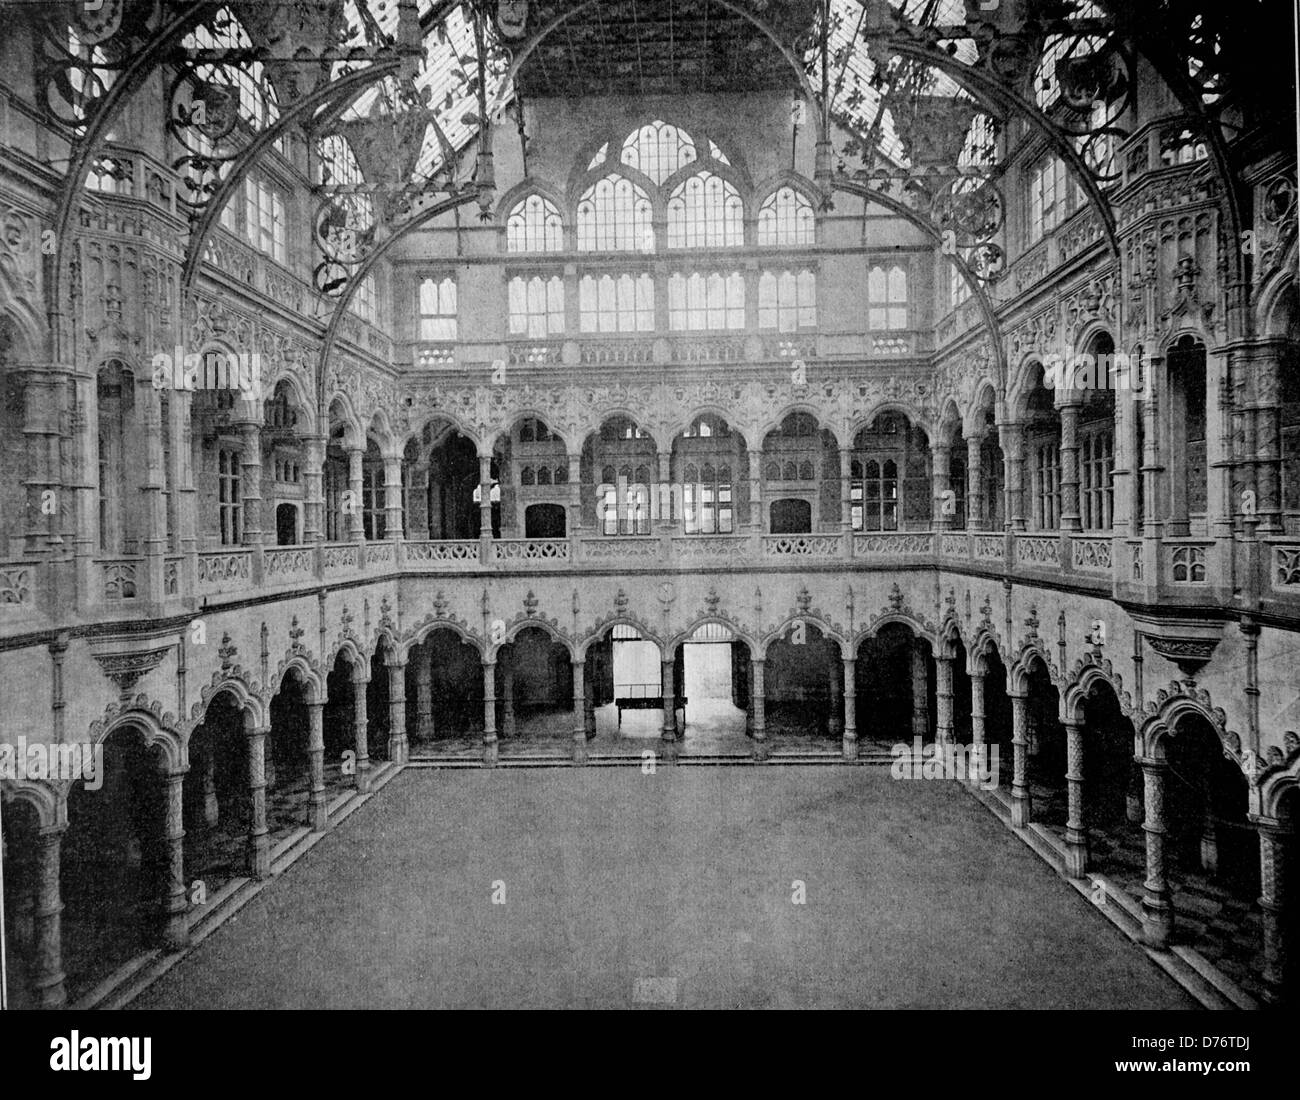 One of the first autotype photographs of the interior of the stock exchange, Bourse d'Anvers, Antwerp, Belgium, - Stock Image